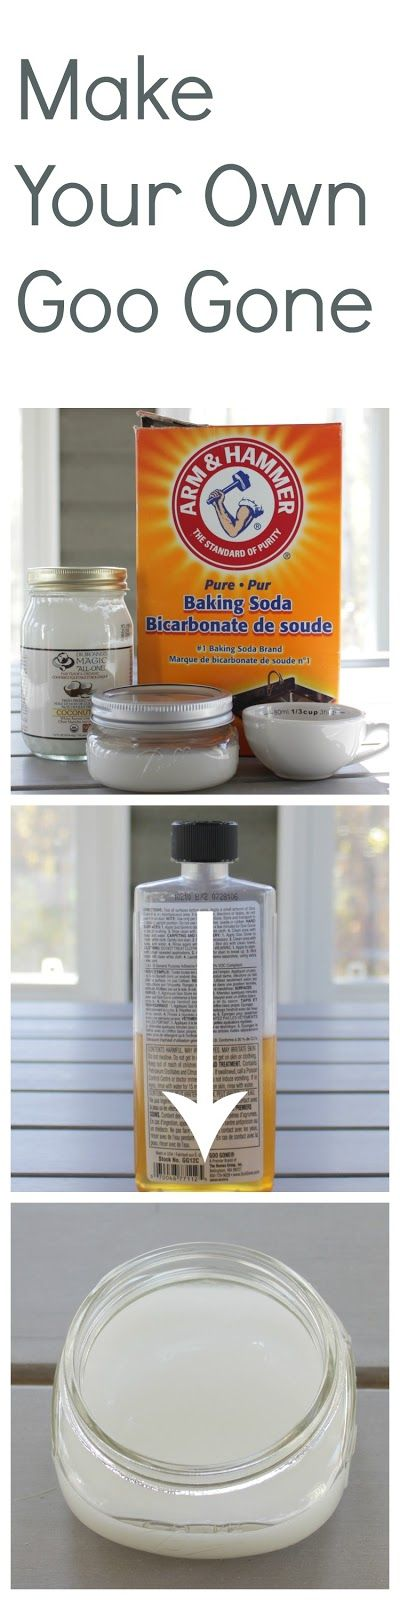 Homemade Goo Gone - make your own to remove stubborn stickers - the best part is there are no harsh chemicals in this mixture.